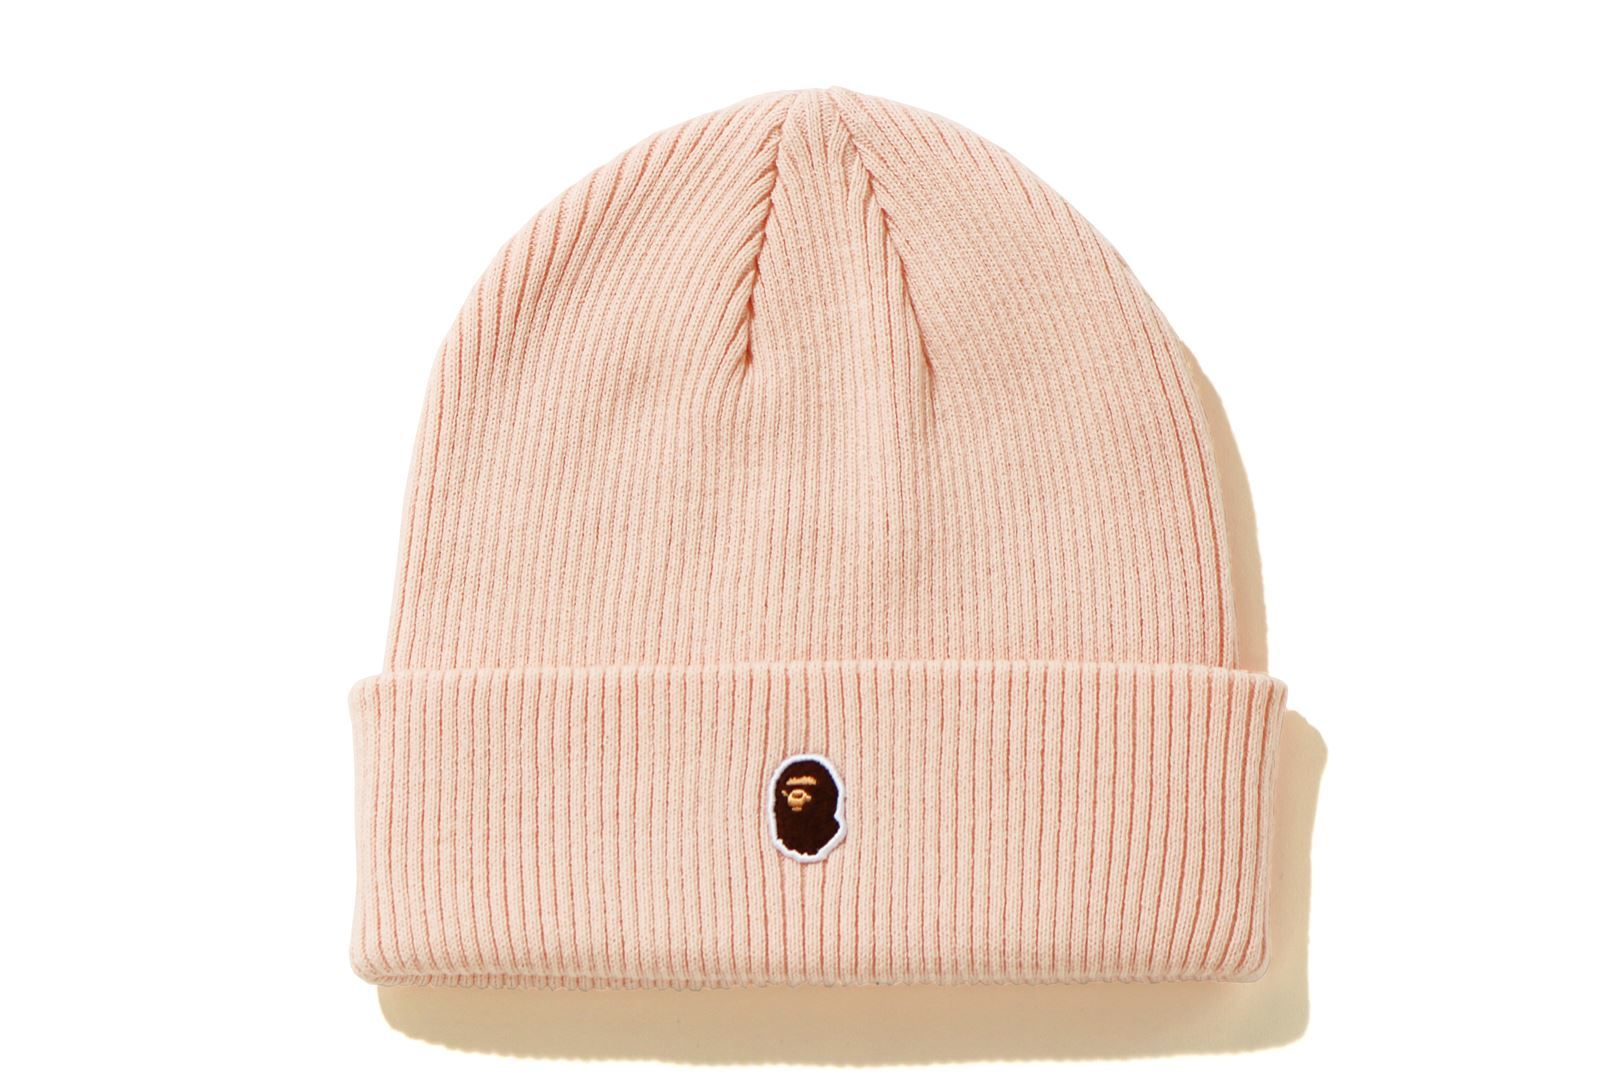 APE HEAD ONE POINT KNIT CAP_a0174495_16195705.jpg